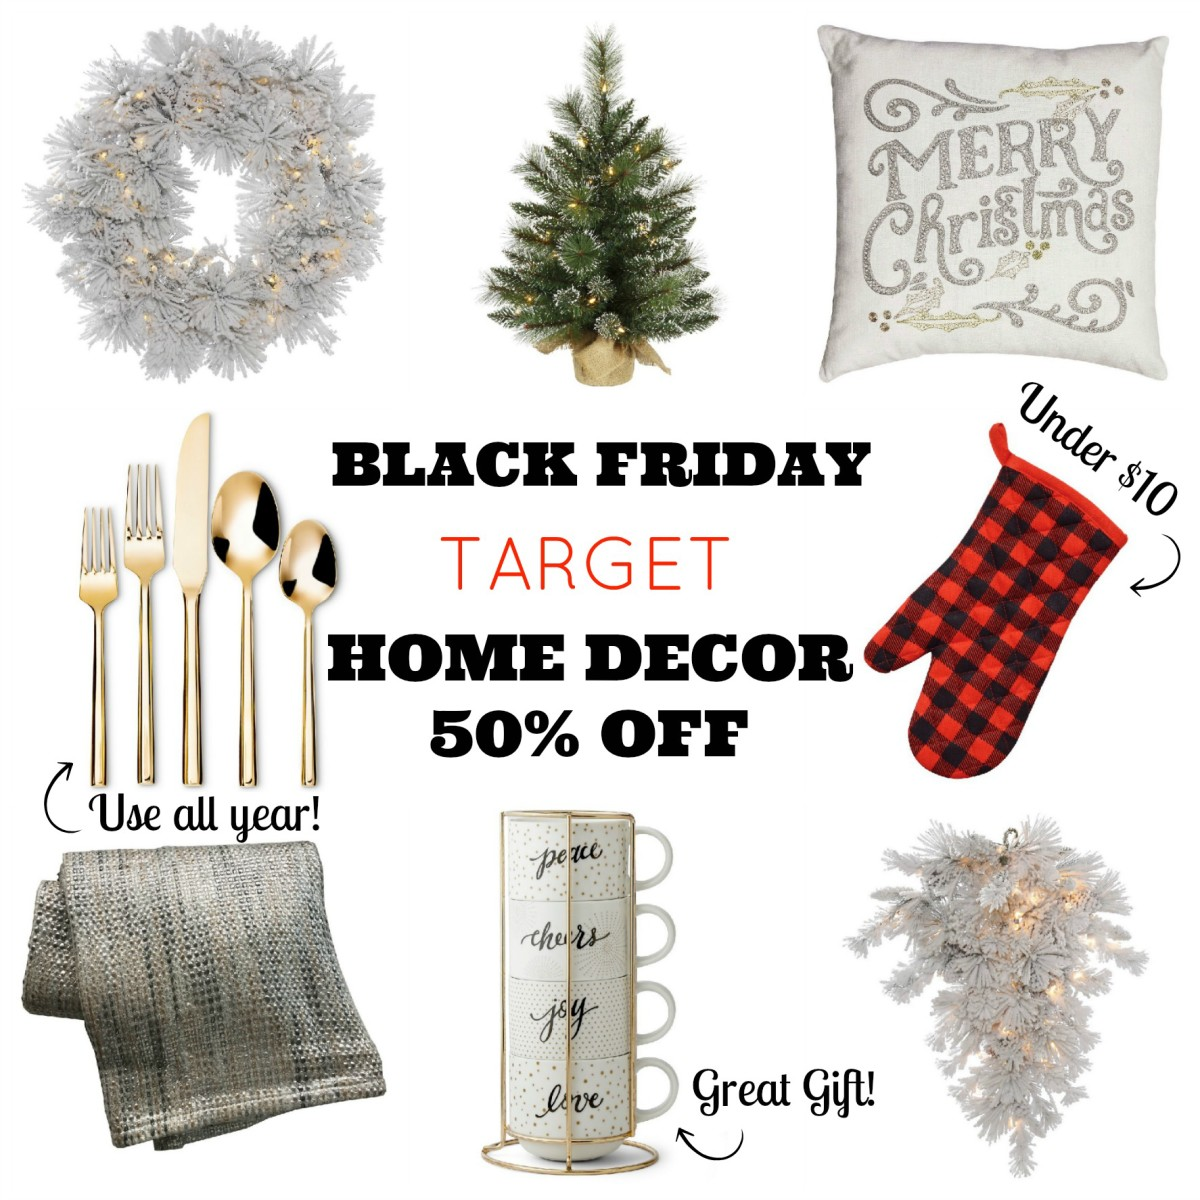 black friday deals target home decor - Black Friday Christmas Decorations